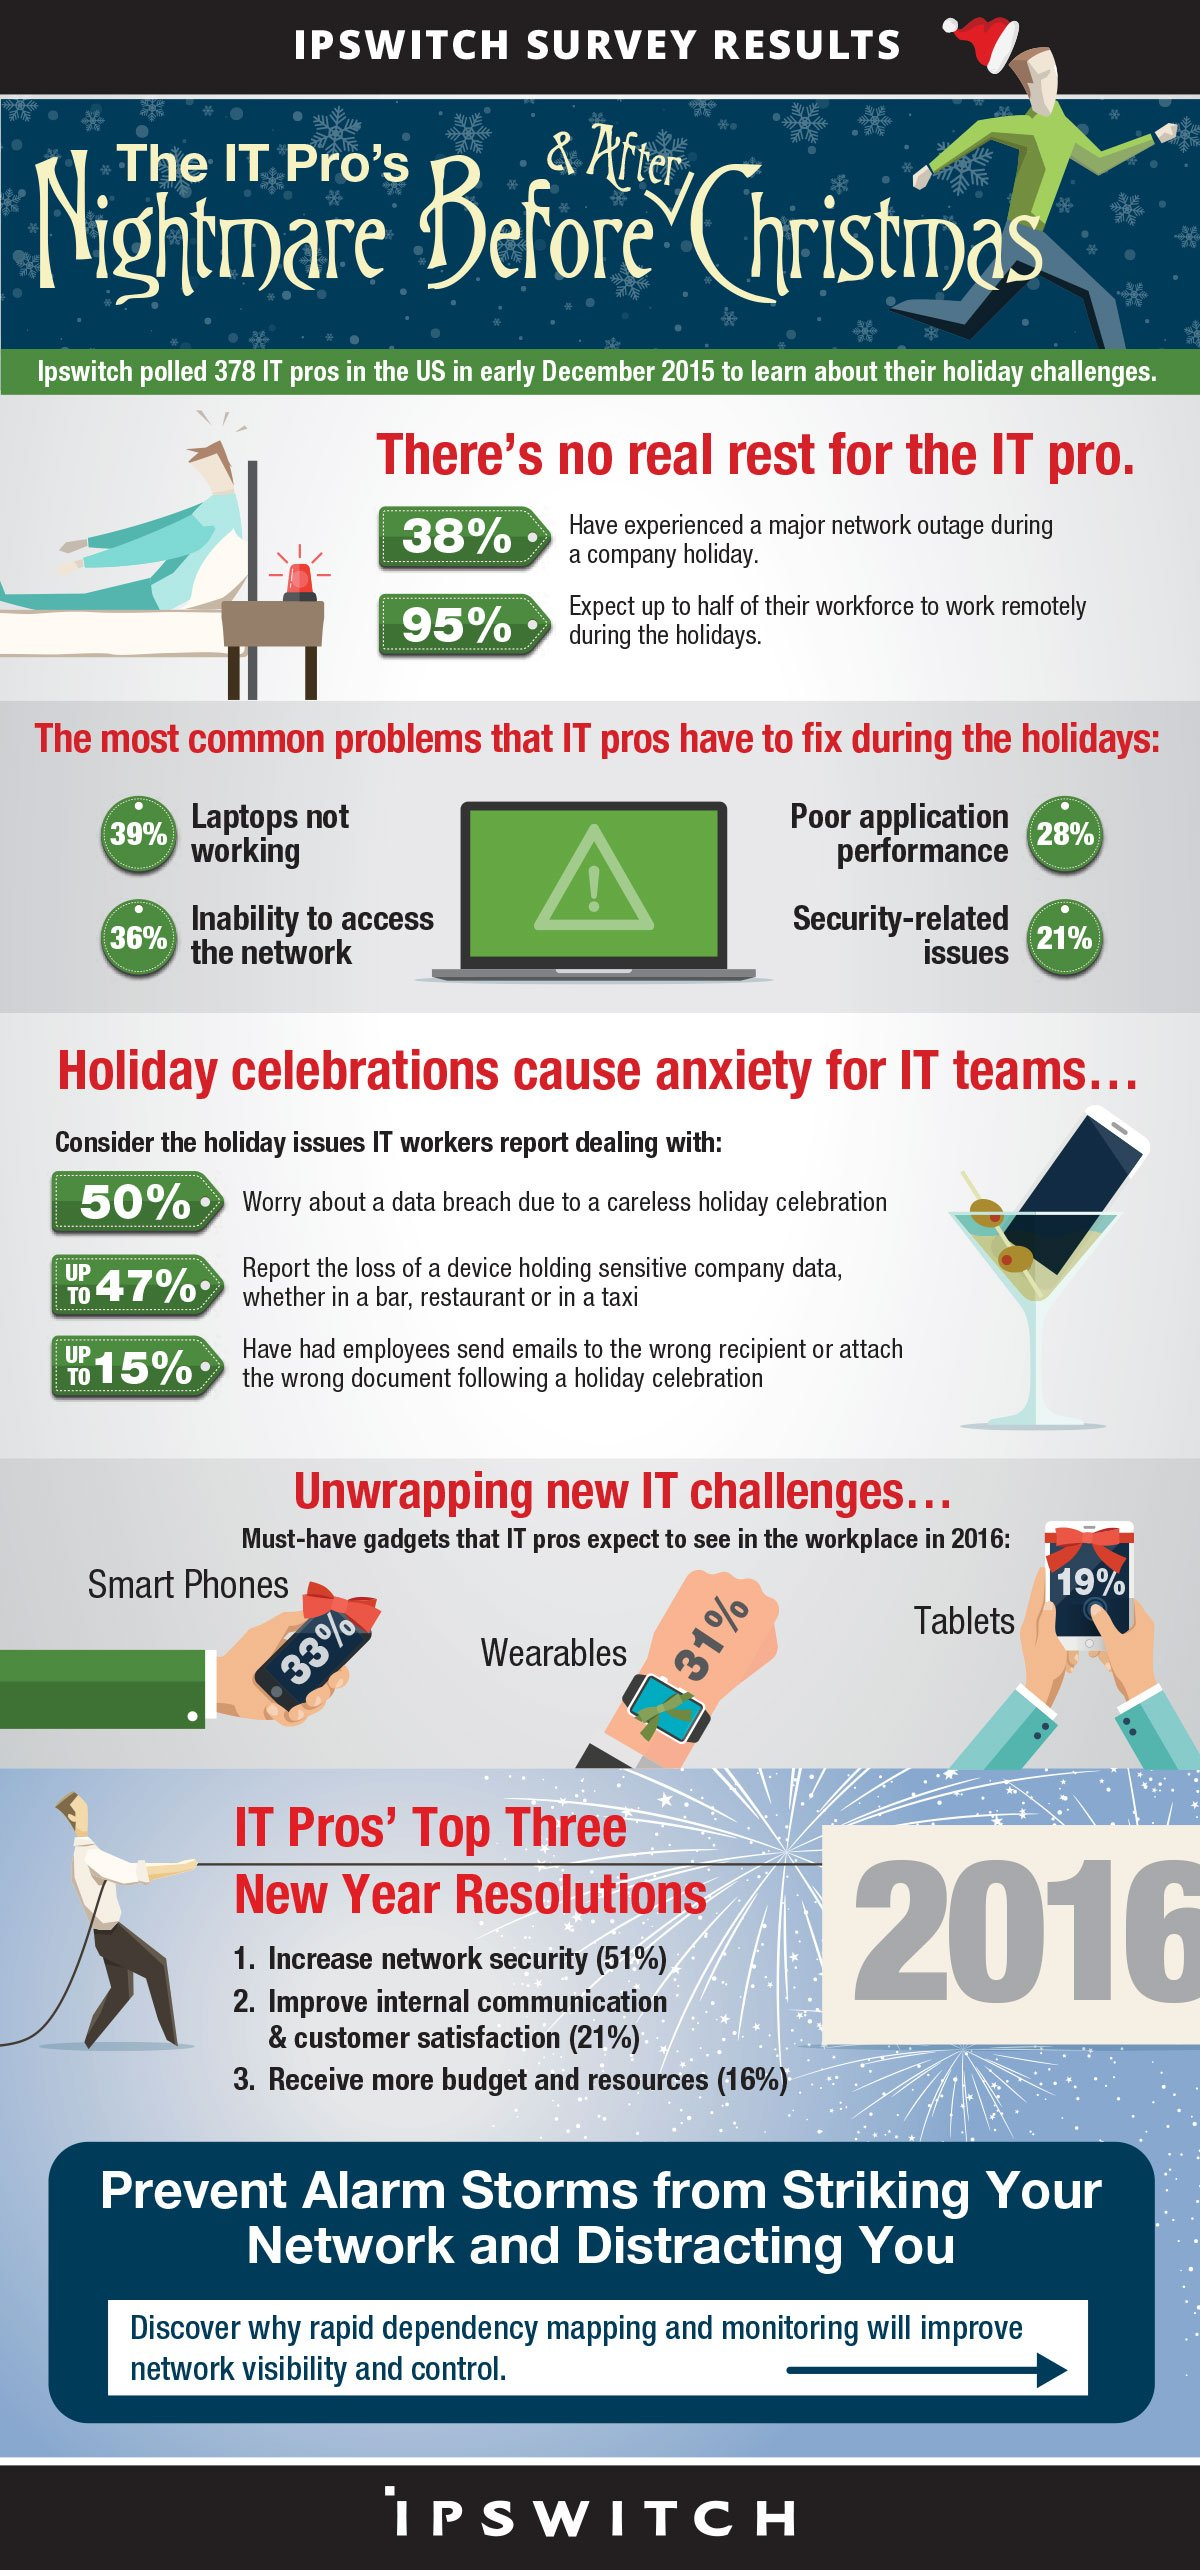 Ipswitch-US-Holiday-Survey-Infographic_Dec-2015_PDF-version1